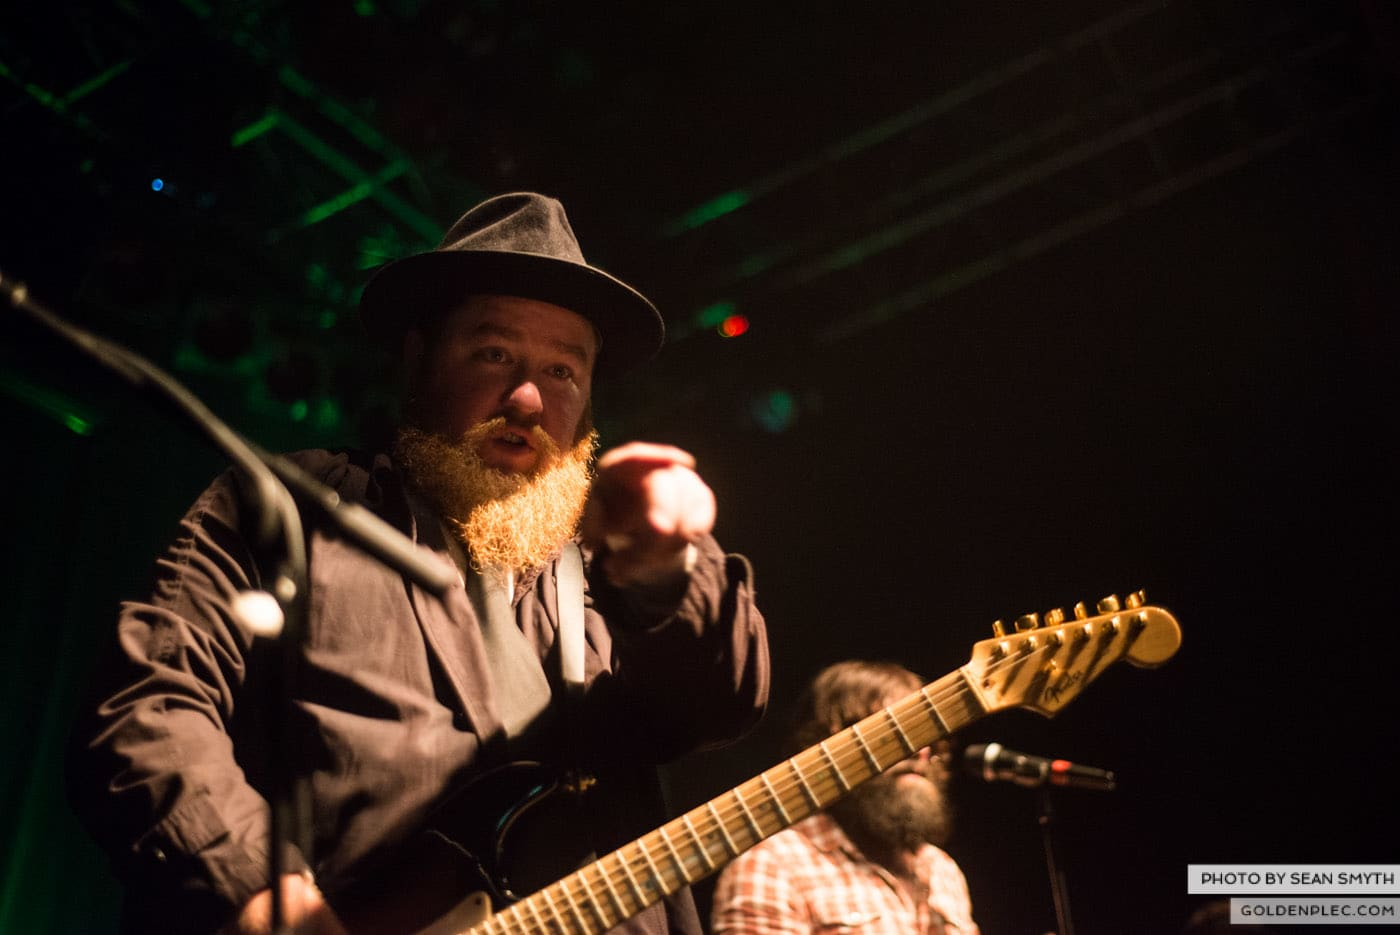 the-beards-at-button-factory-by-sean-smyth-10-12-14-14-of-49